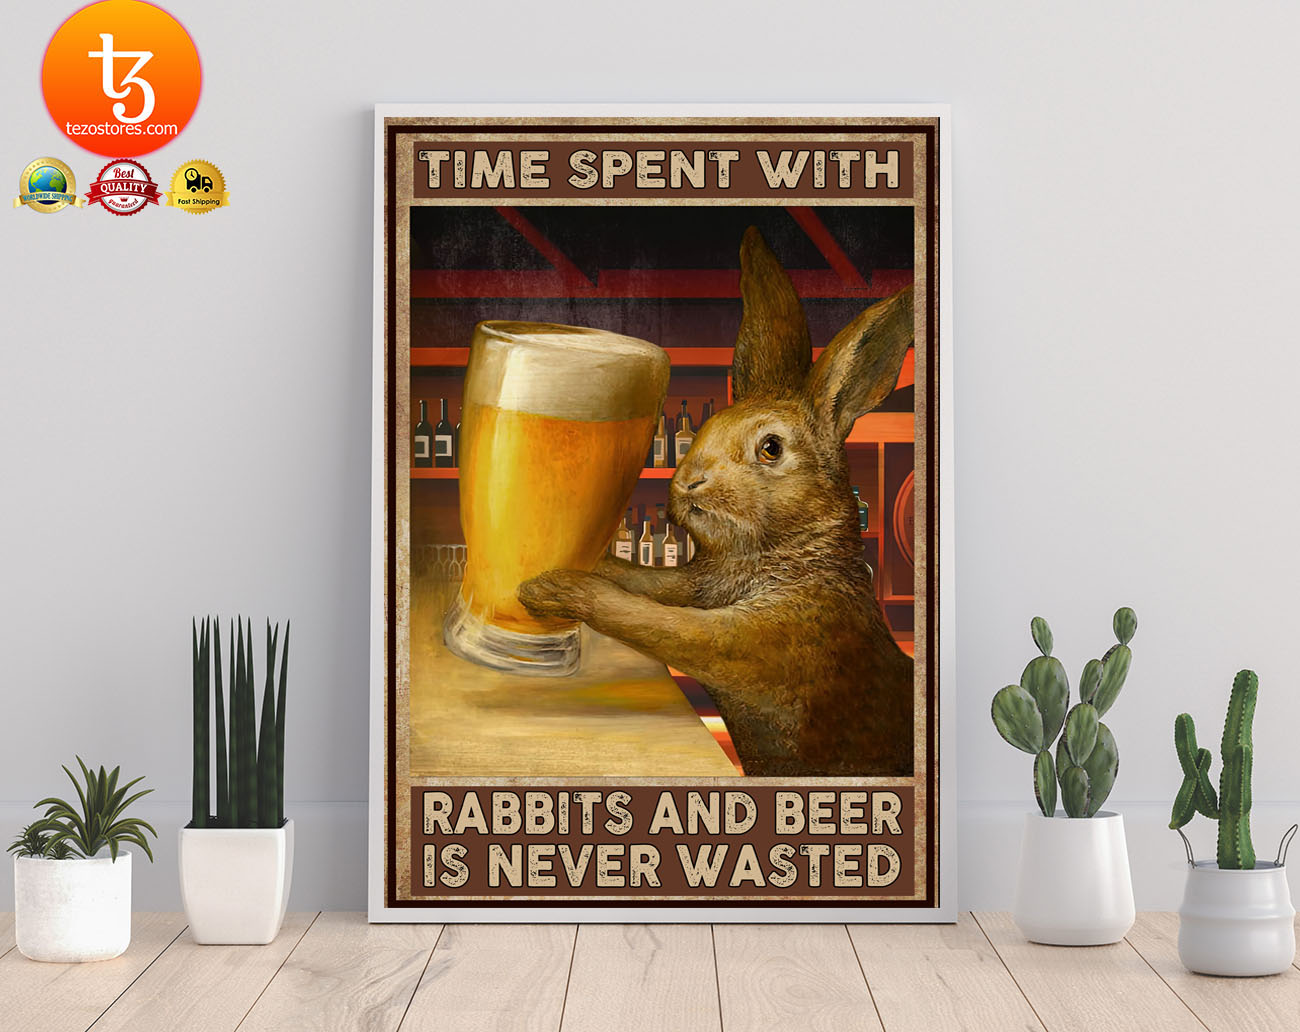 Time spent with rabbits and beer is never wasted poster 21